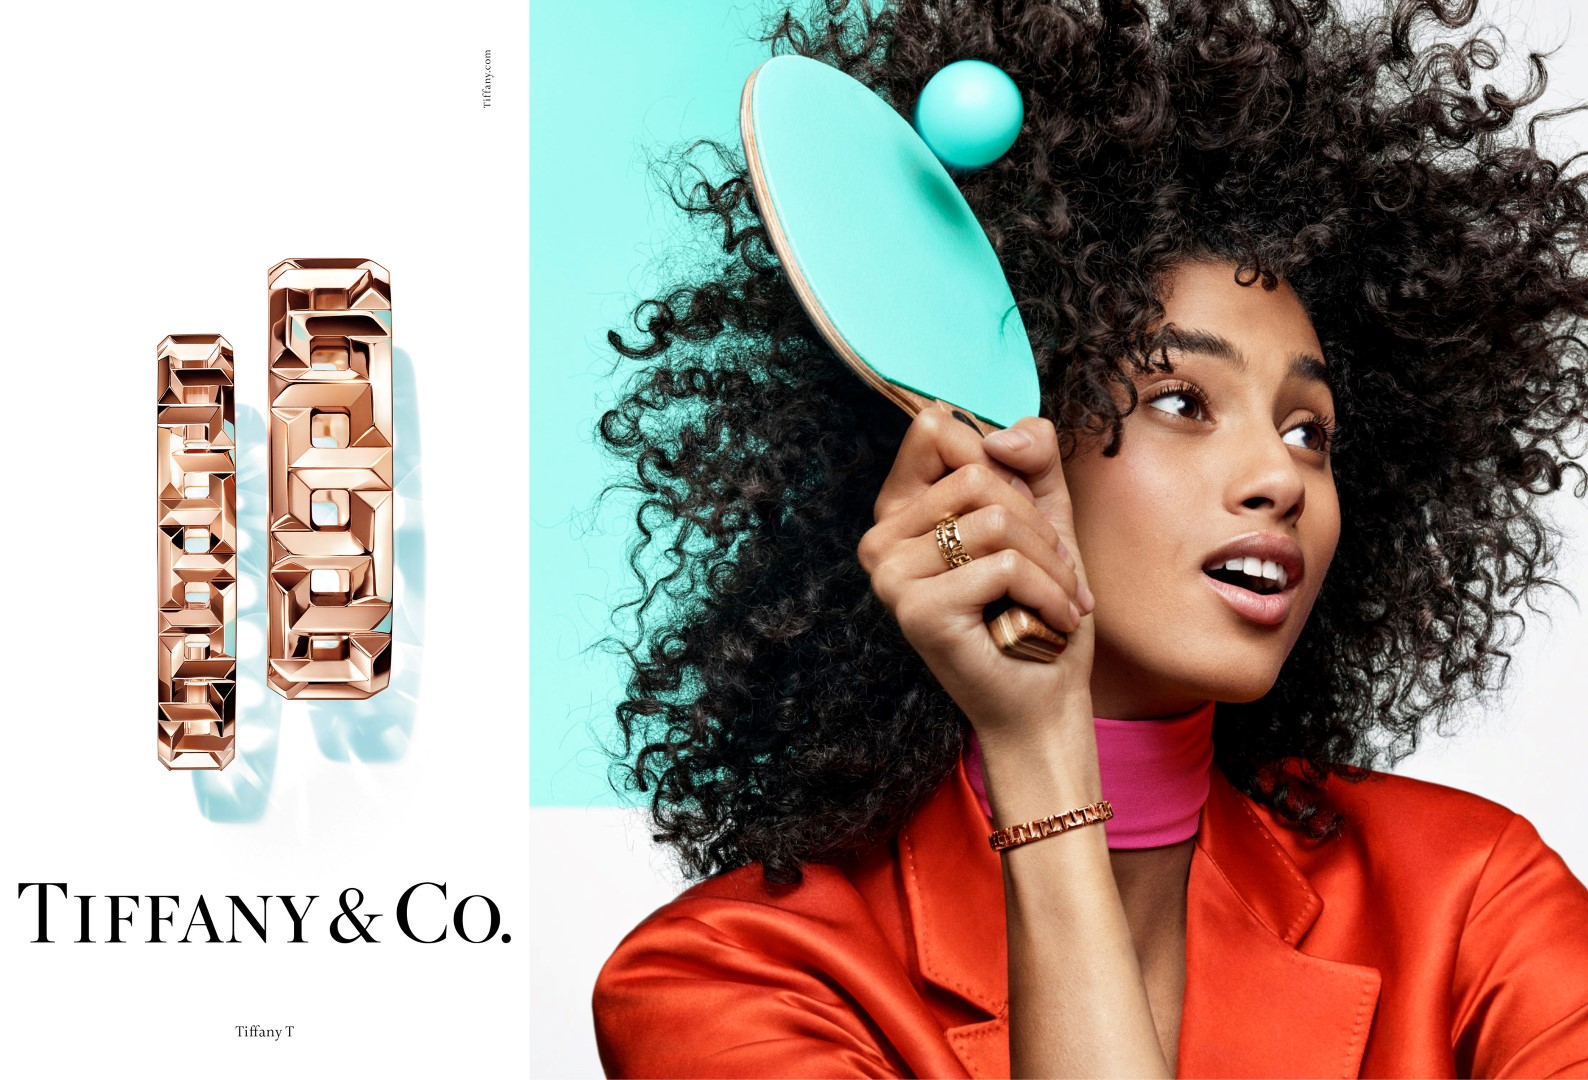 Tiffany & Co campagna primavera 2019